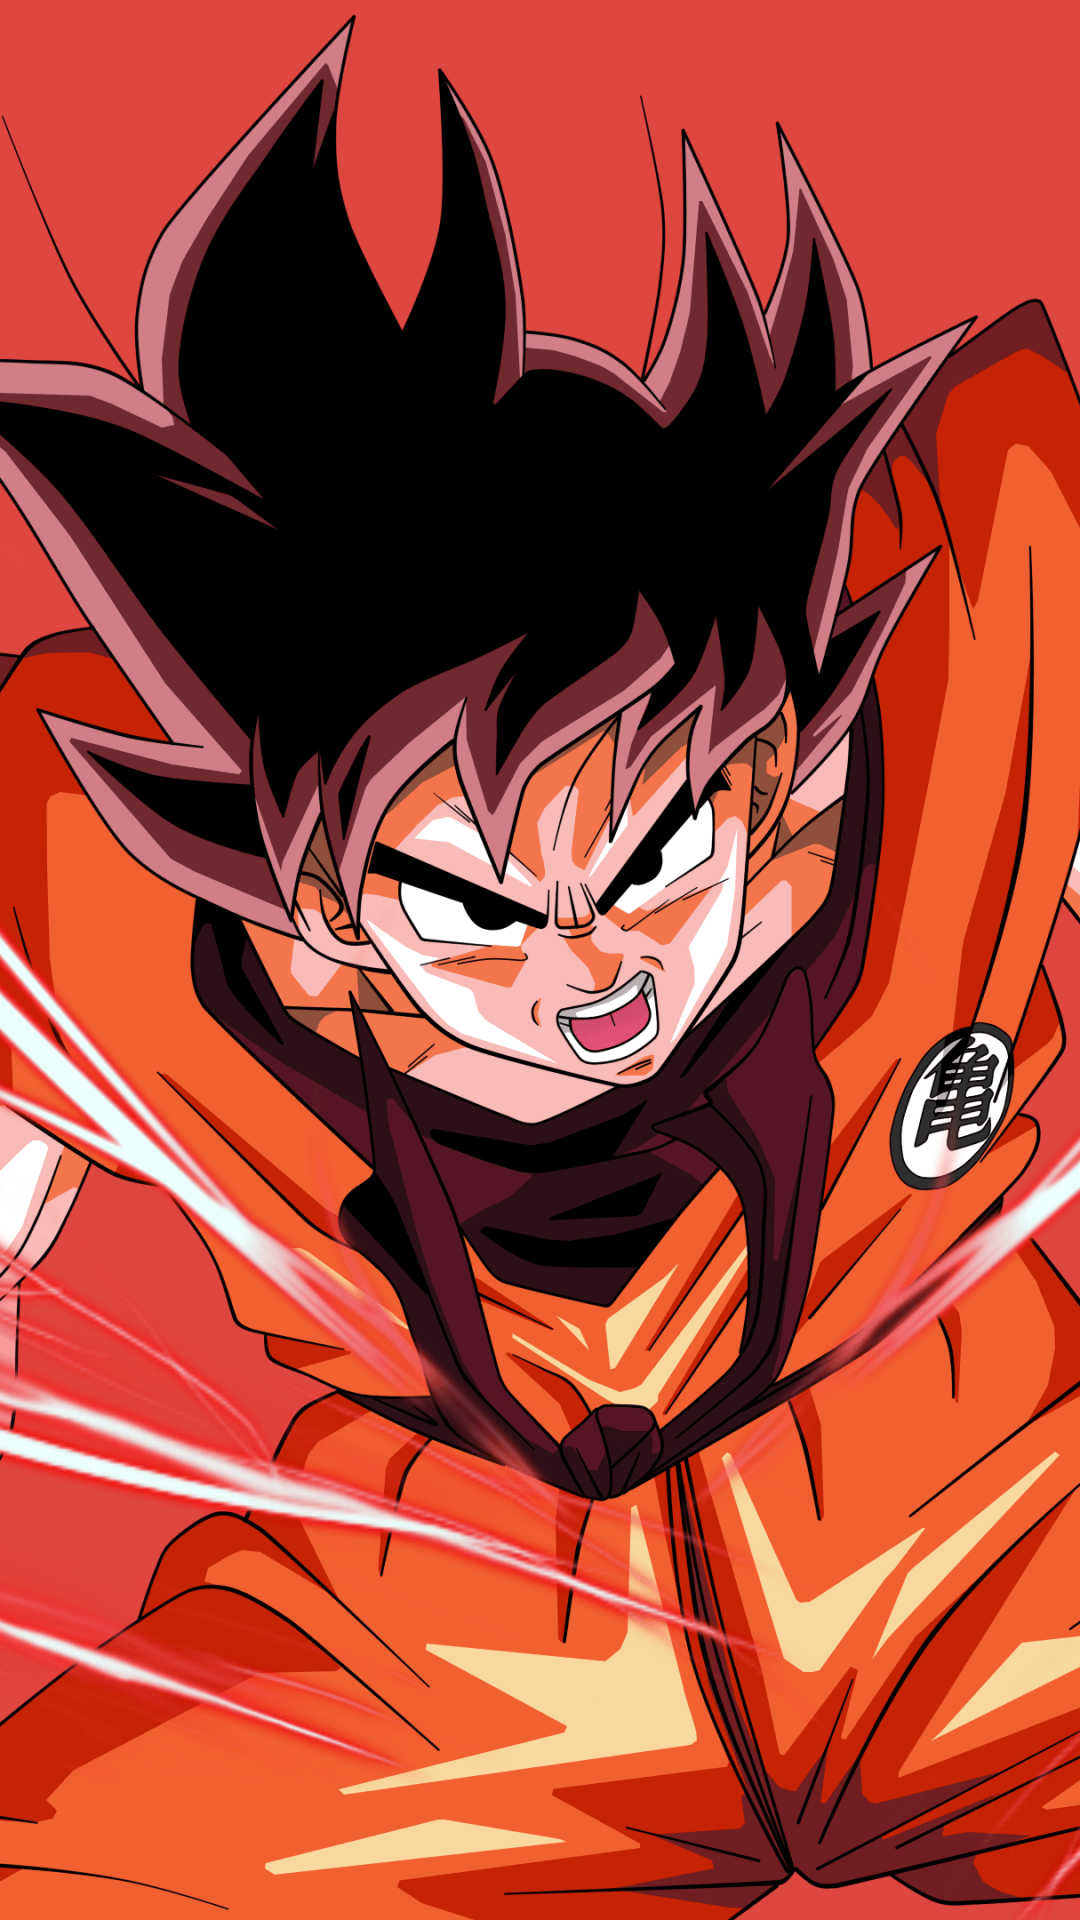 High Quality Anime Wallpaper Iphone Xr in 2020 Anime dragon ball 1080x1920